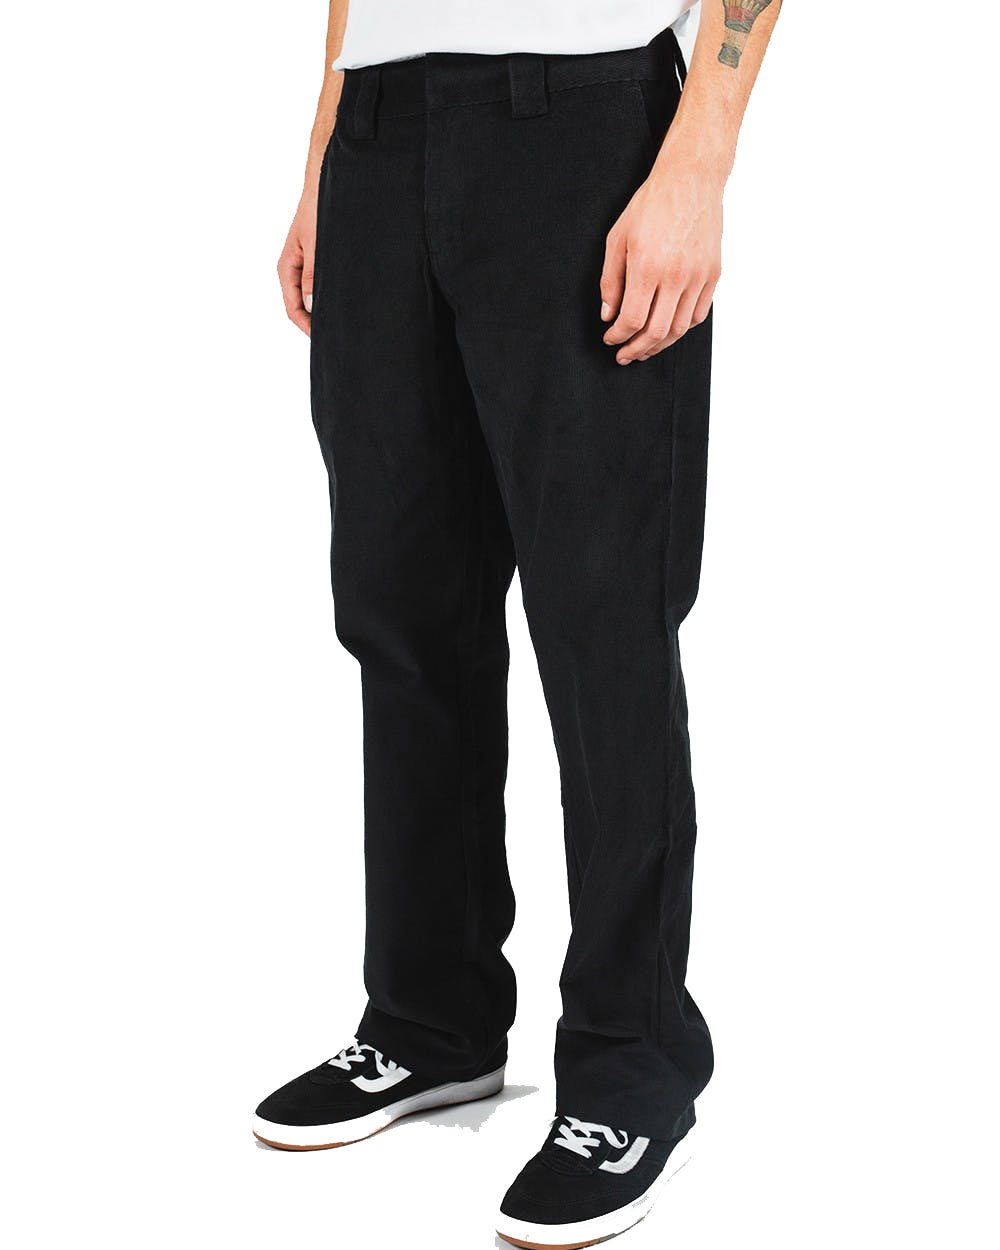 Dickies Sonora 873 Mens Pants - Black